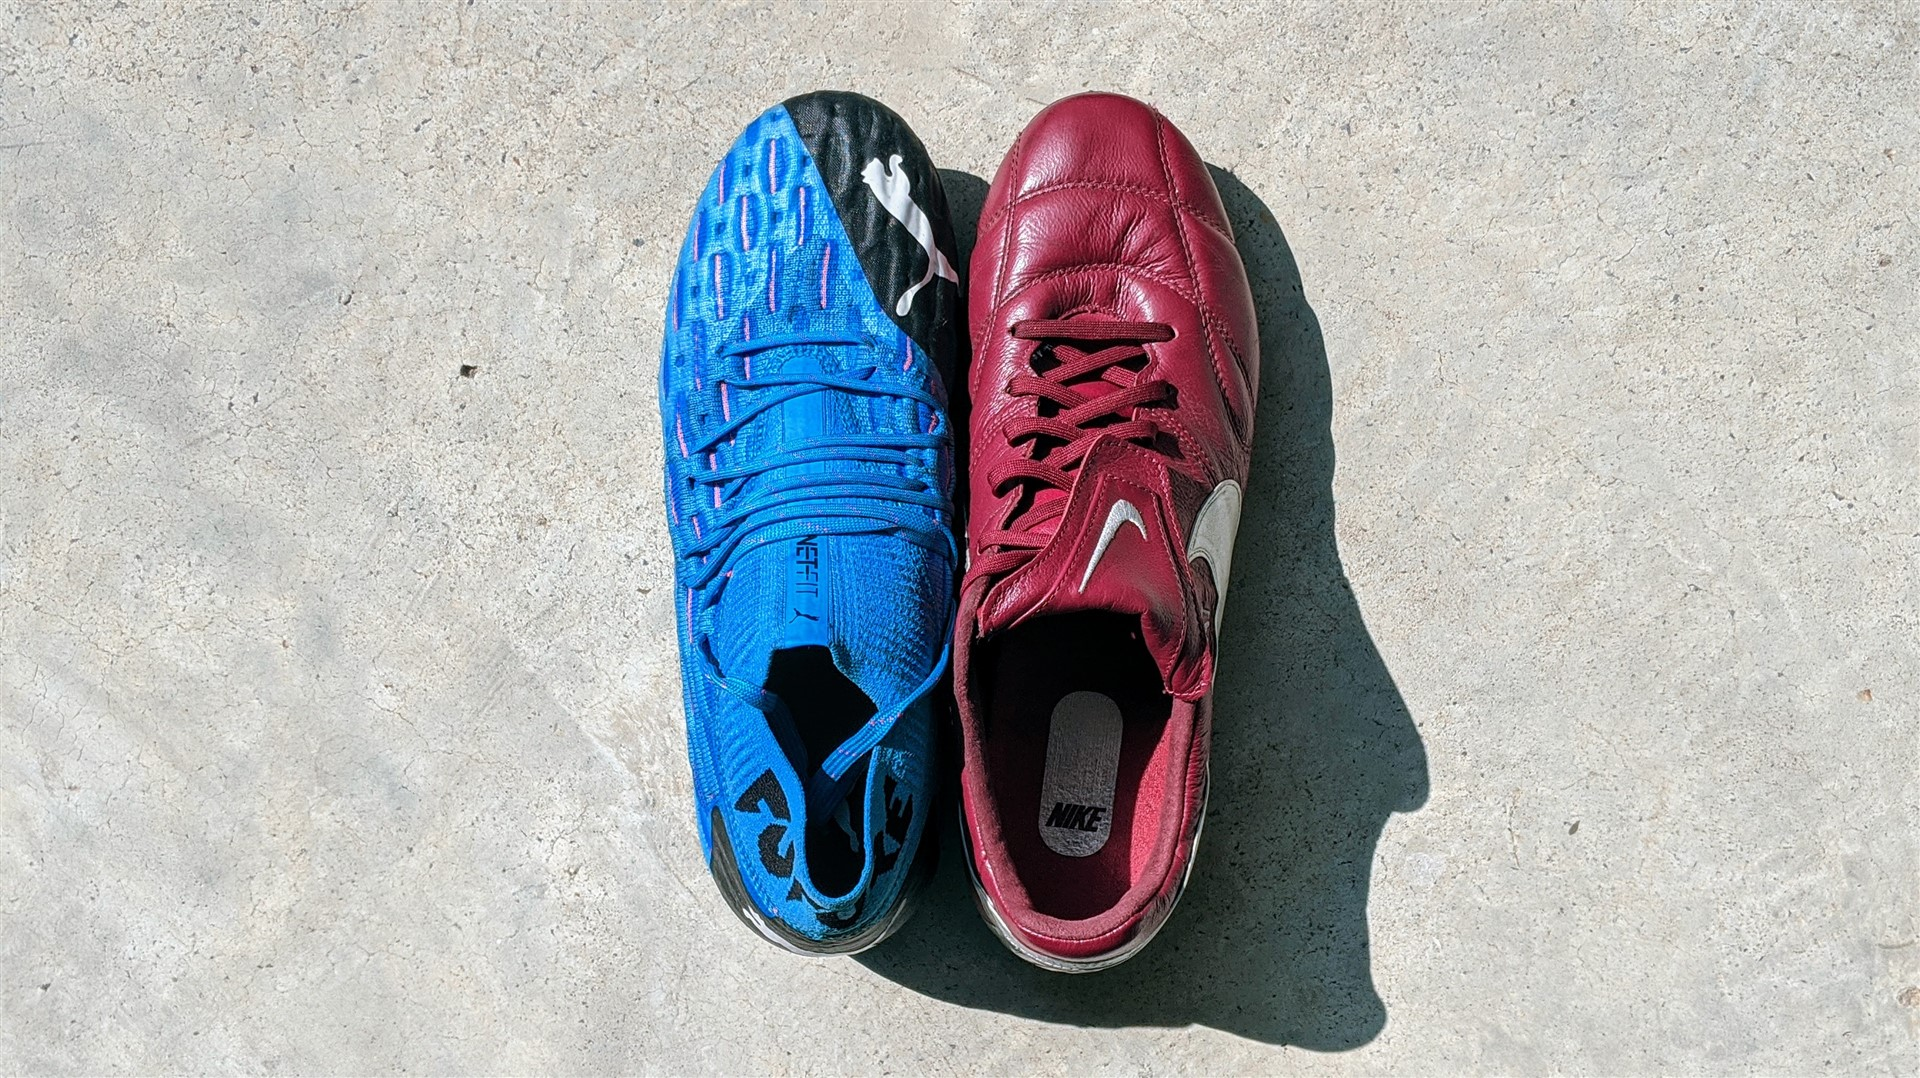 mizuno football boots for wide feet